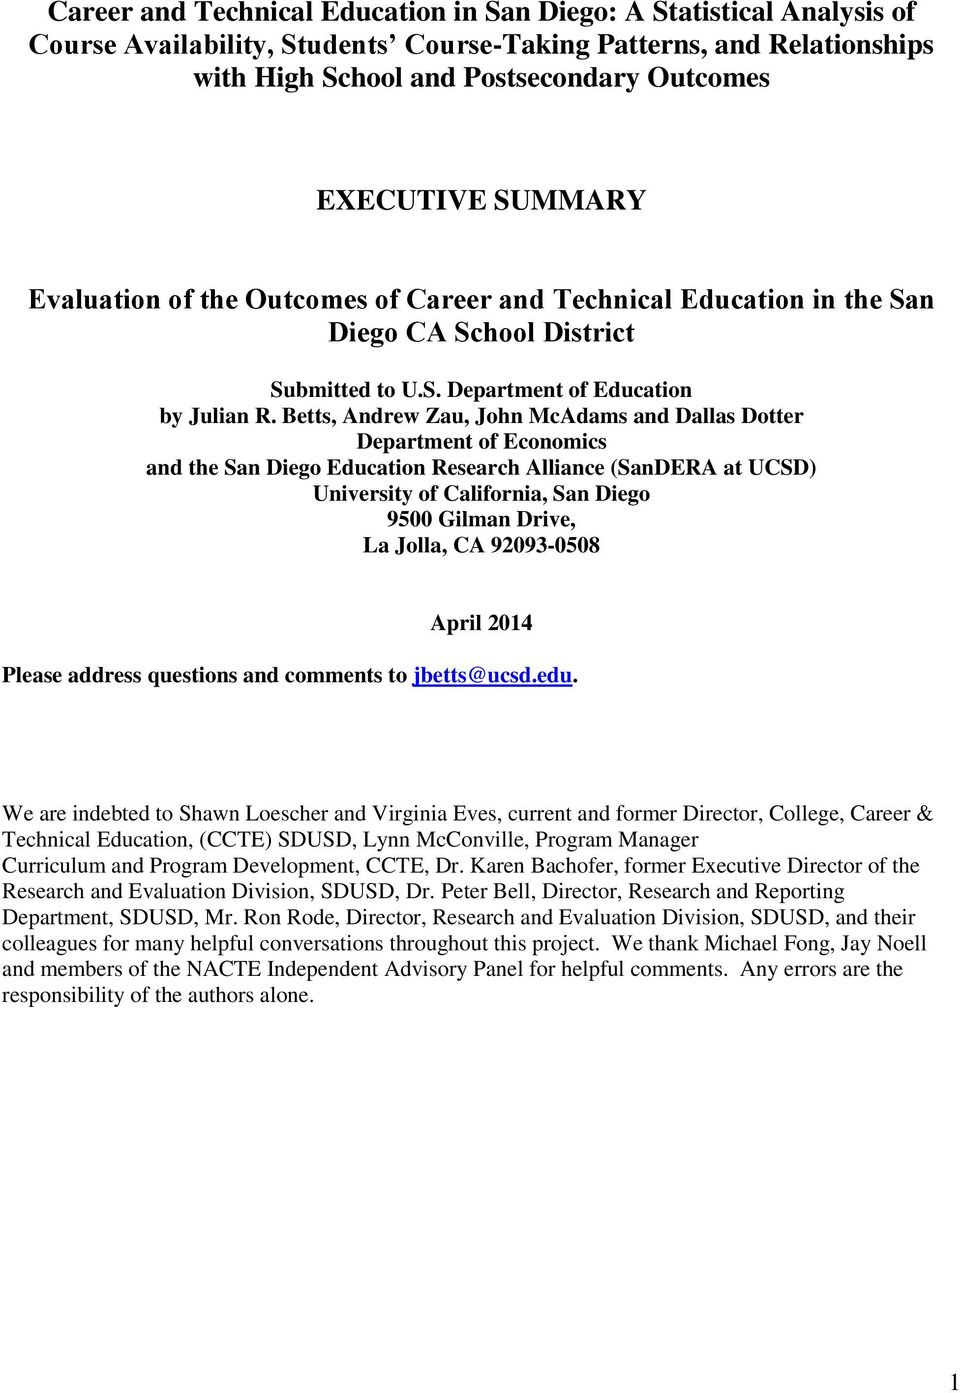 Betts, Andrew Zau, John McAdams and Dallas Dotter Department of Economics and the San Diego Education Research Alliance (SanDERA at UCSD) University of California, San Diego 9500 Gilman Drive, La